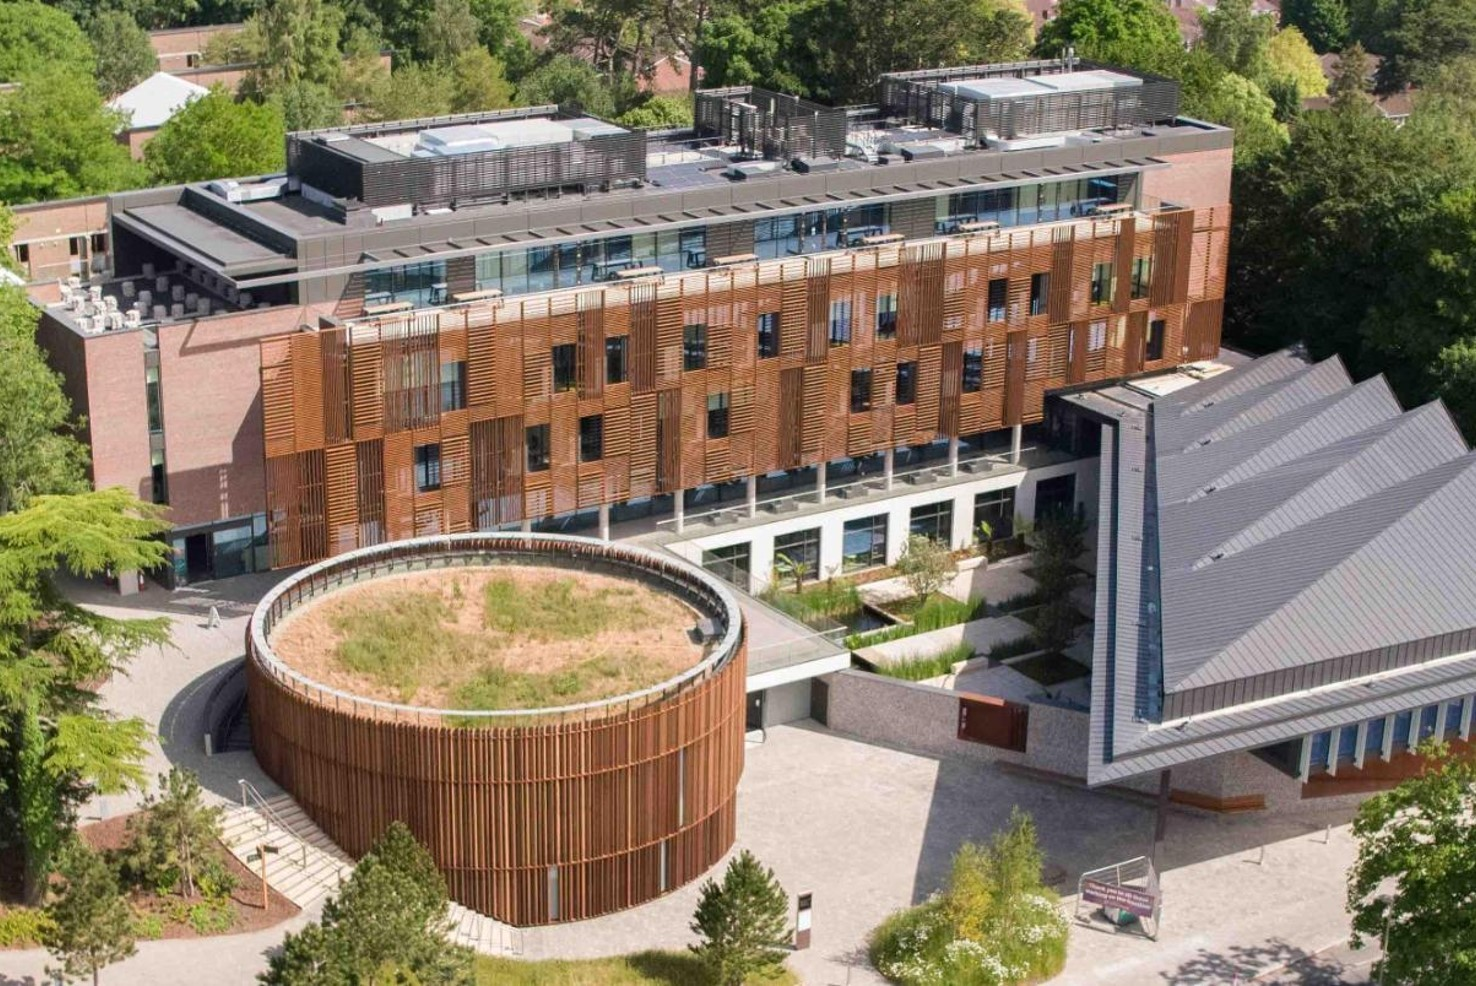 WEST DOWNS CENTRE: New Building for University of Winchester